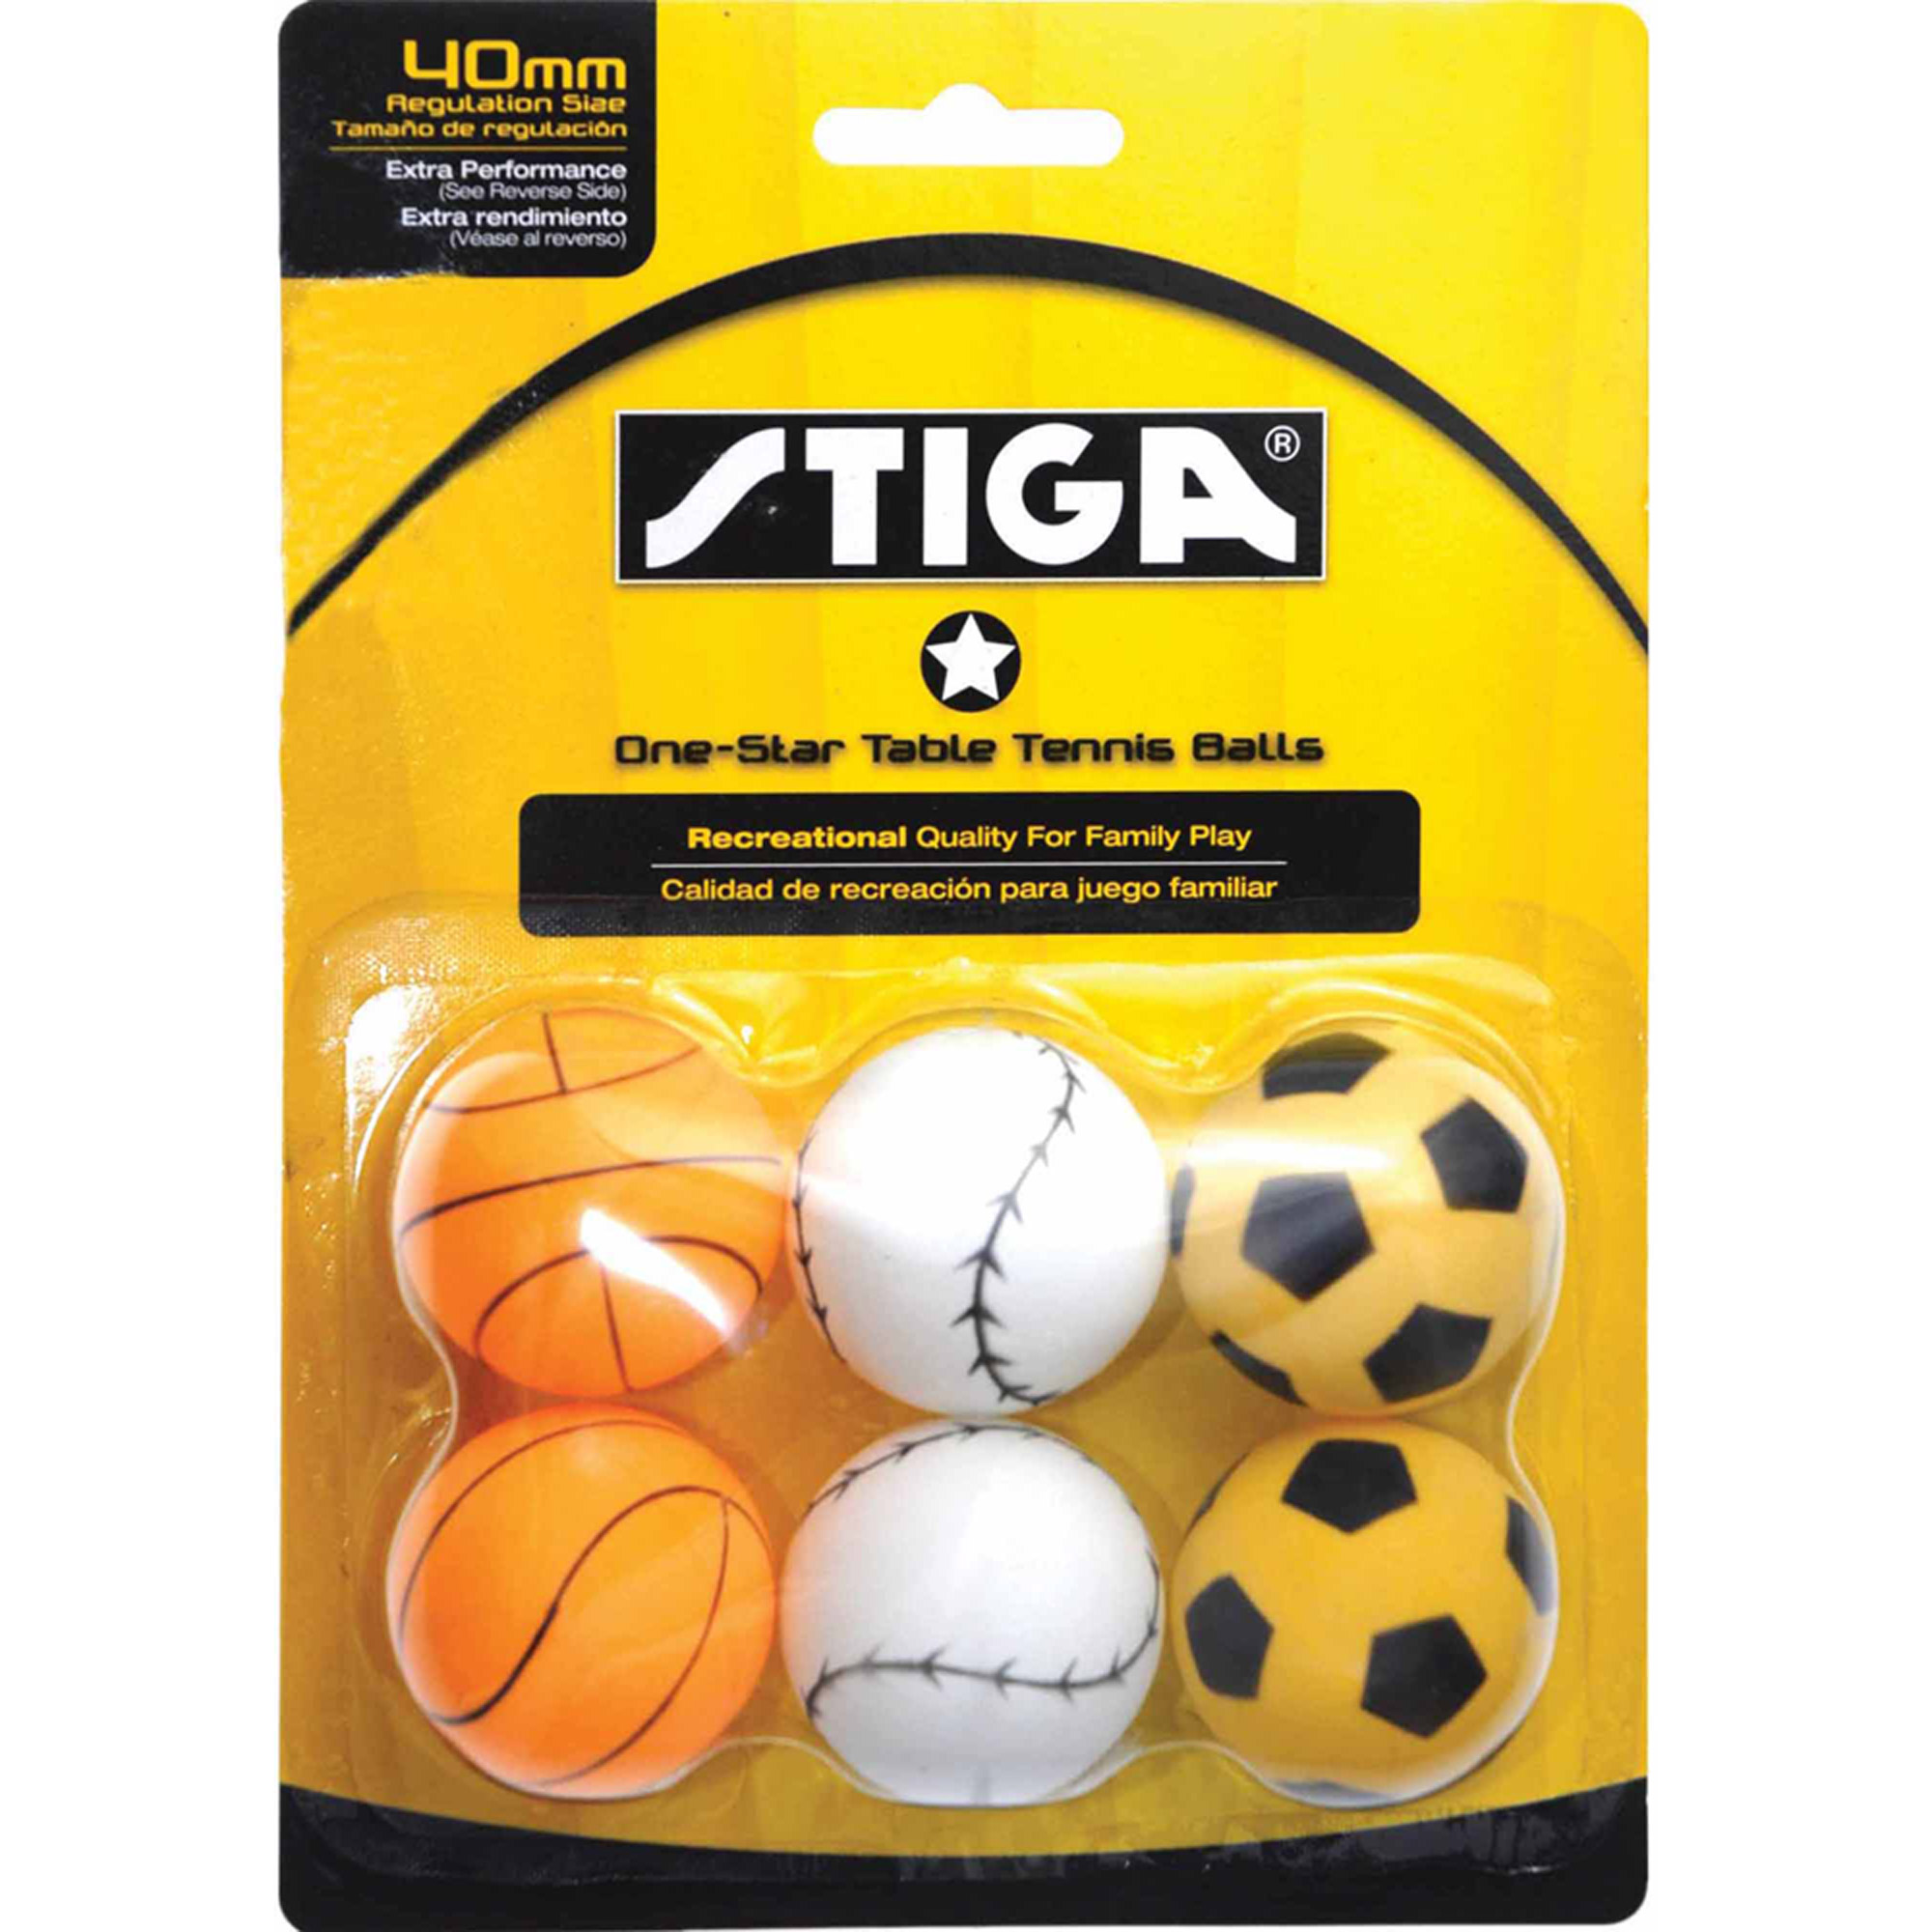 STIGA 1-Star Sport Table Tennis Balls, 6pk